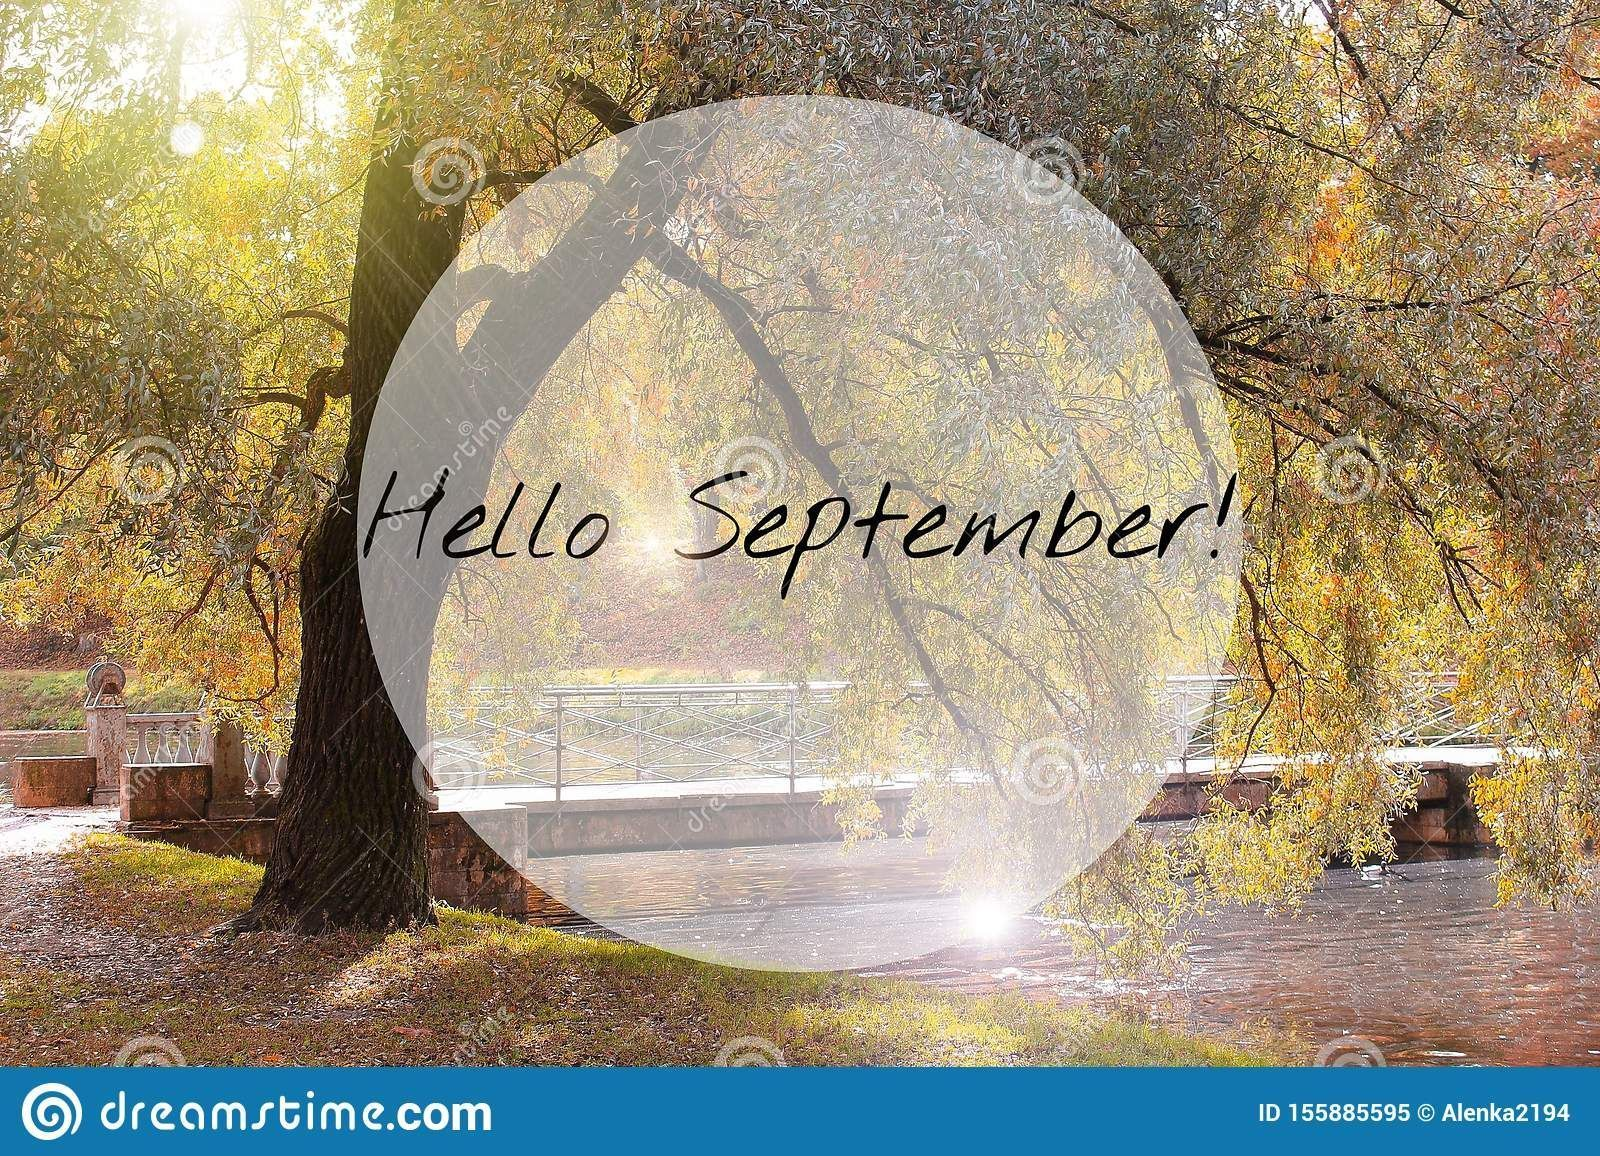 Photo about Hello September banner. New month. Greeting card. Golden autumn. The text in the photo. Seasons. Trees in the park. City Park. Autumn Park. Image of banner, outdoor, autumn - 155885595 #helloseptember Photo about Hello September banner. New month. Greeting card. Golden autumn. The text in the photo. Seasons. Trees in the park. City Park. Autumn Park. Image of banner, outdoor, autumn - 155885595 #helloseptember Photo about Hello September banner. New month. Greeting card. Golden autum #helloseptember